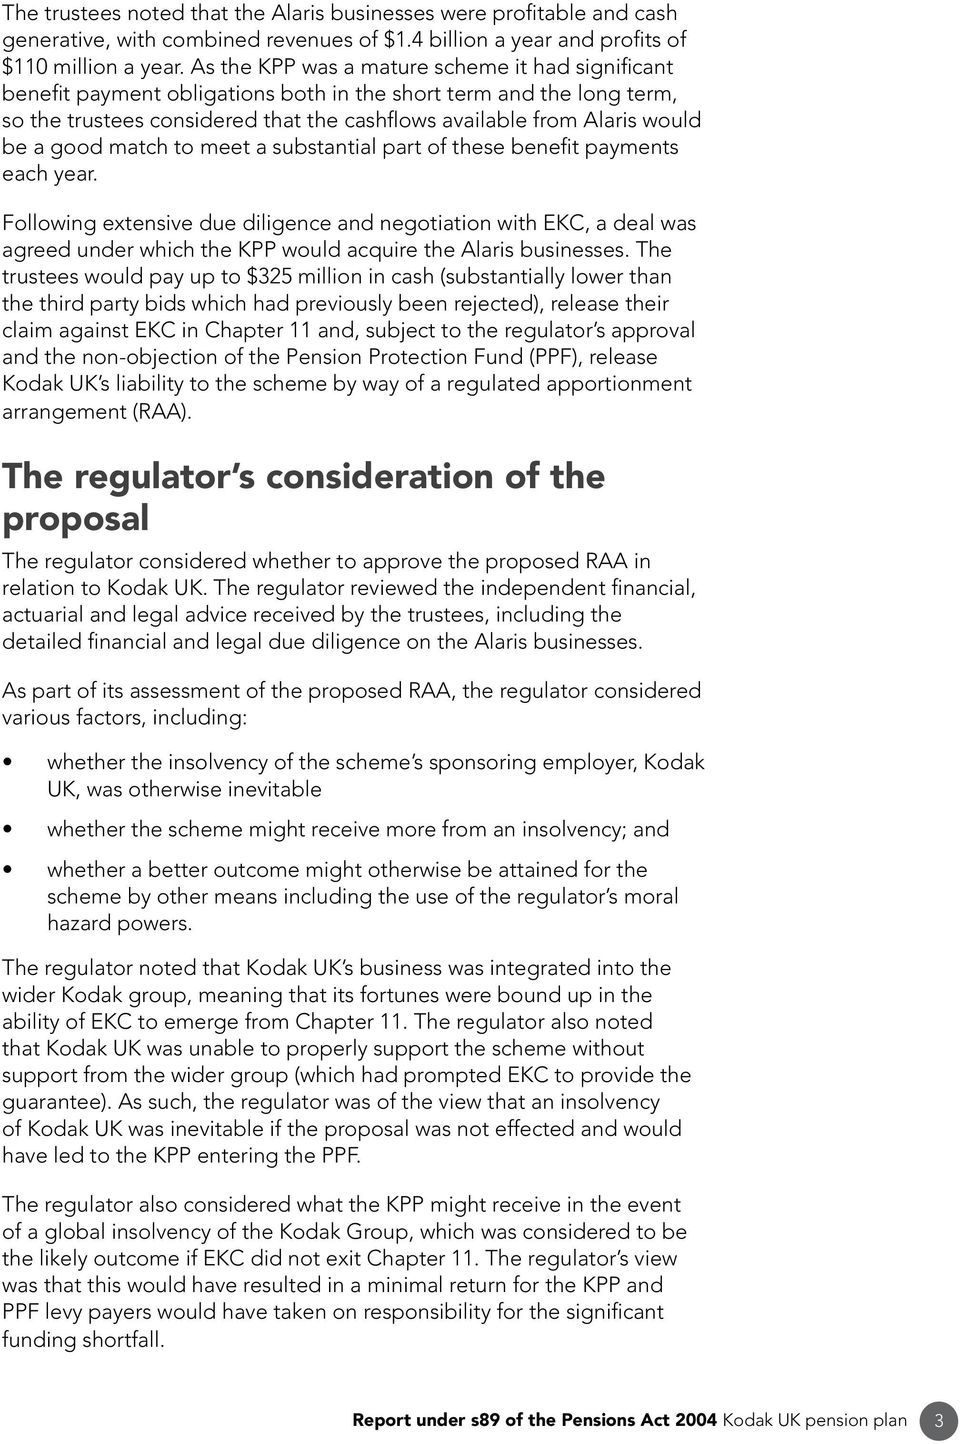 Report under s89 of the Pensions Act PDF